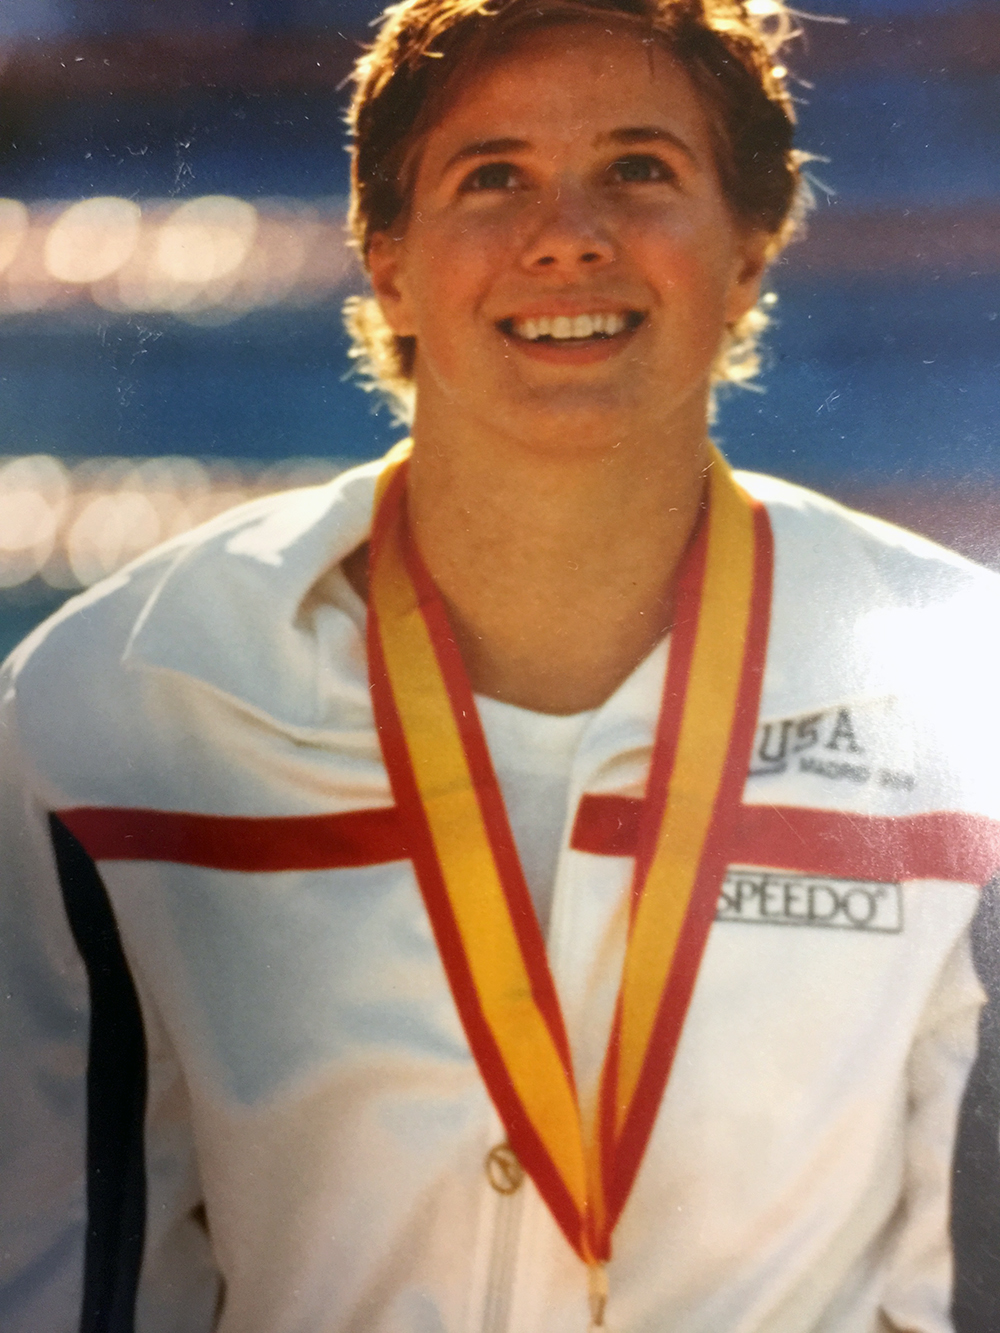 1986 World Championship win, in Madrid, Spain.